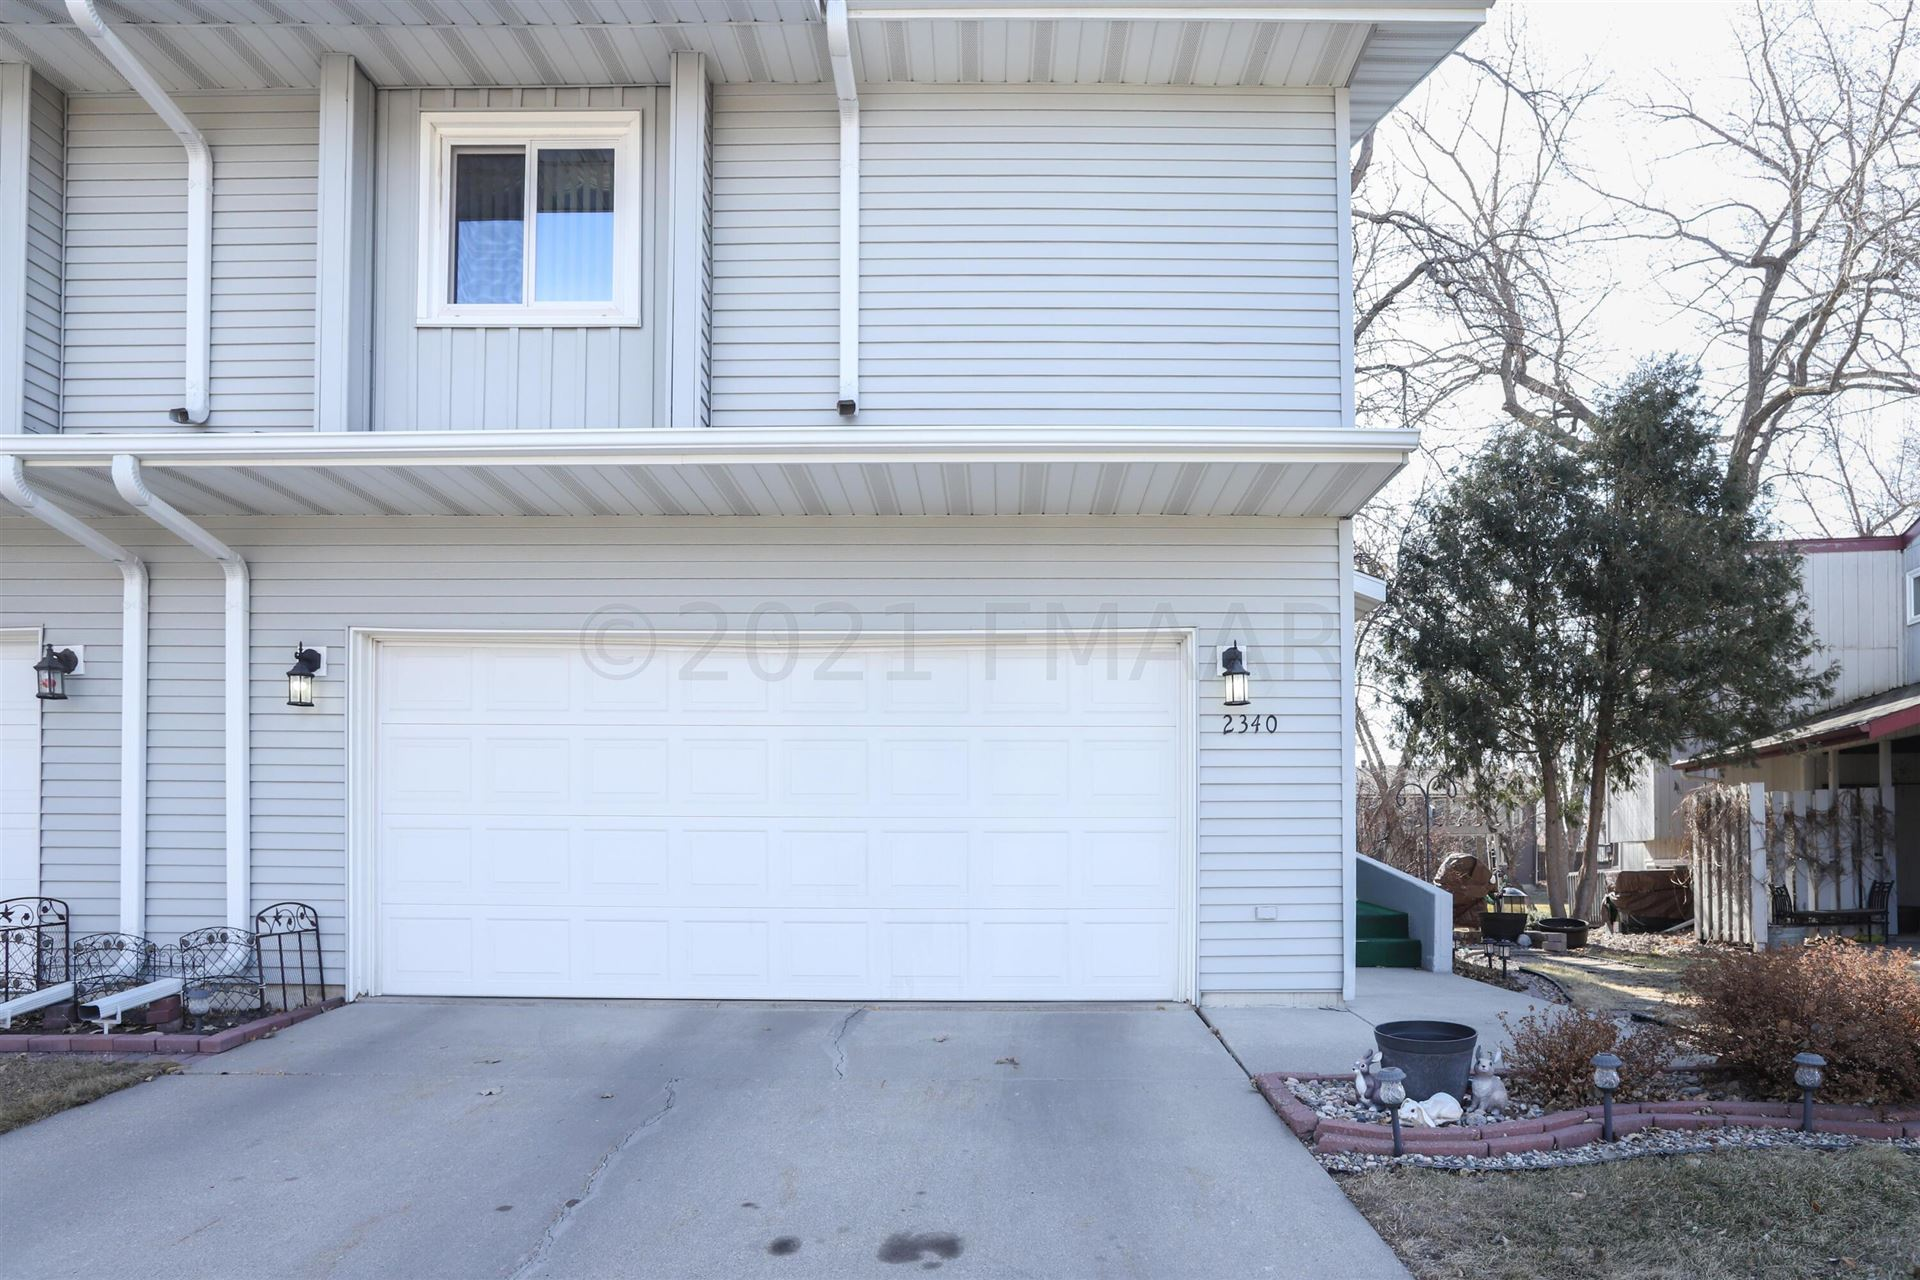 2340 DEMORES Drive S, Fargo, ND 58103 - #: 21-1745